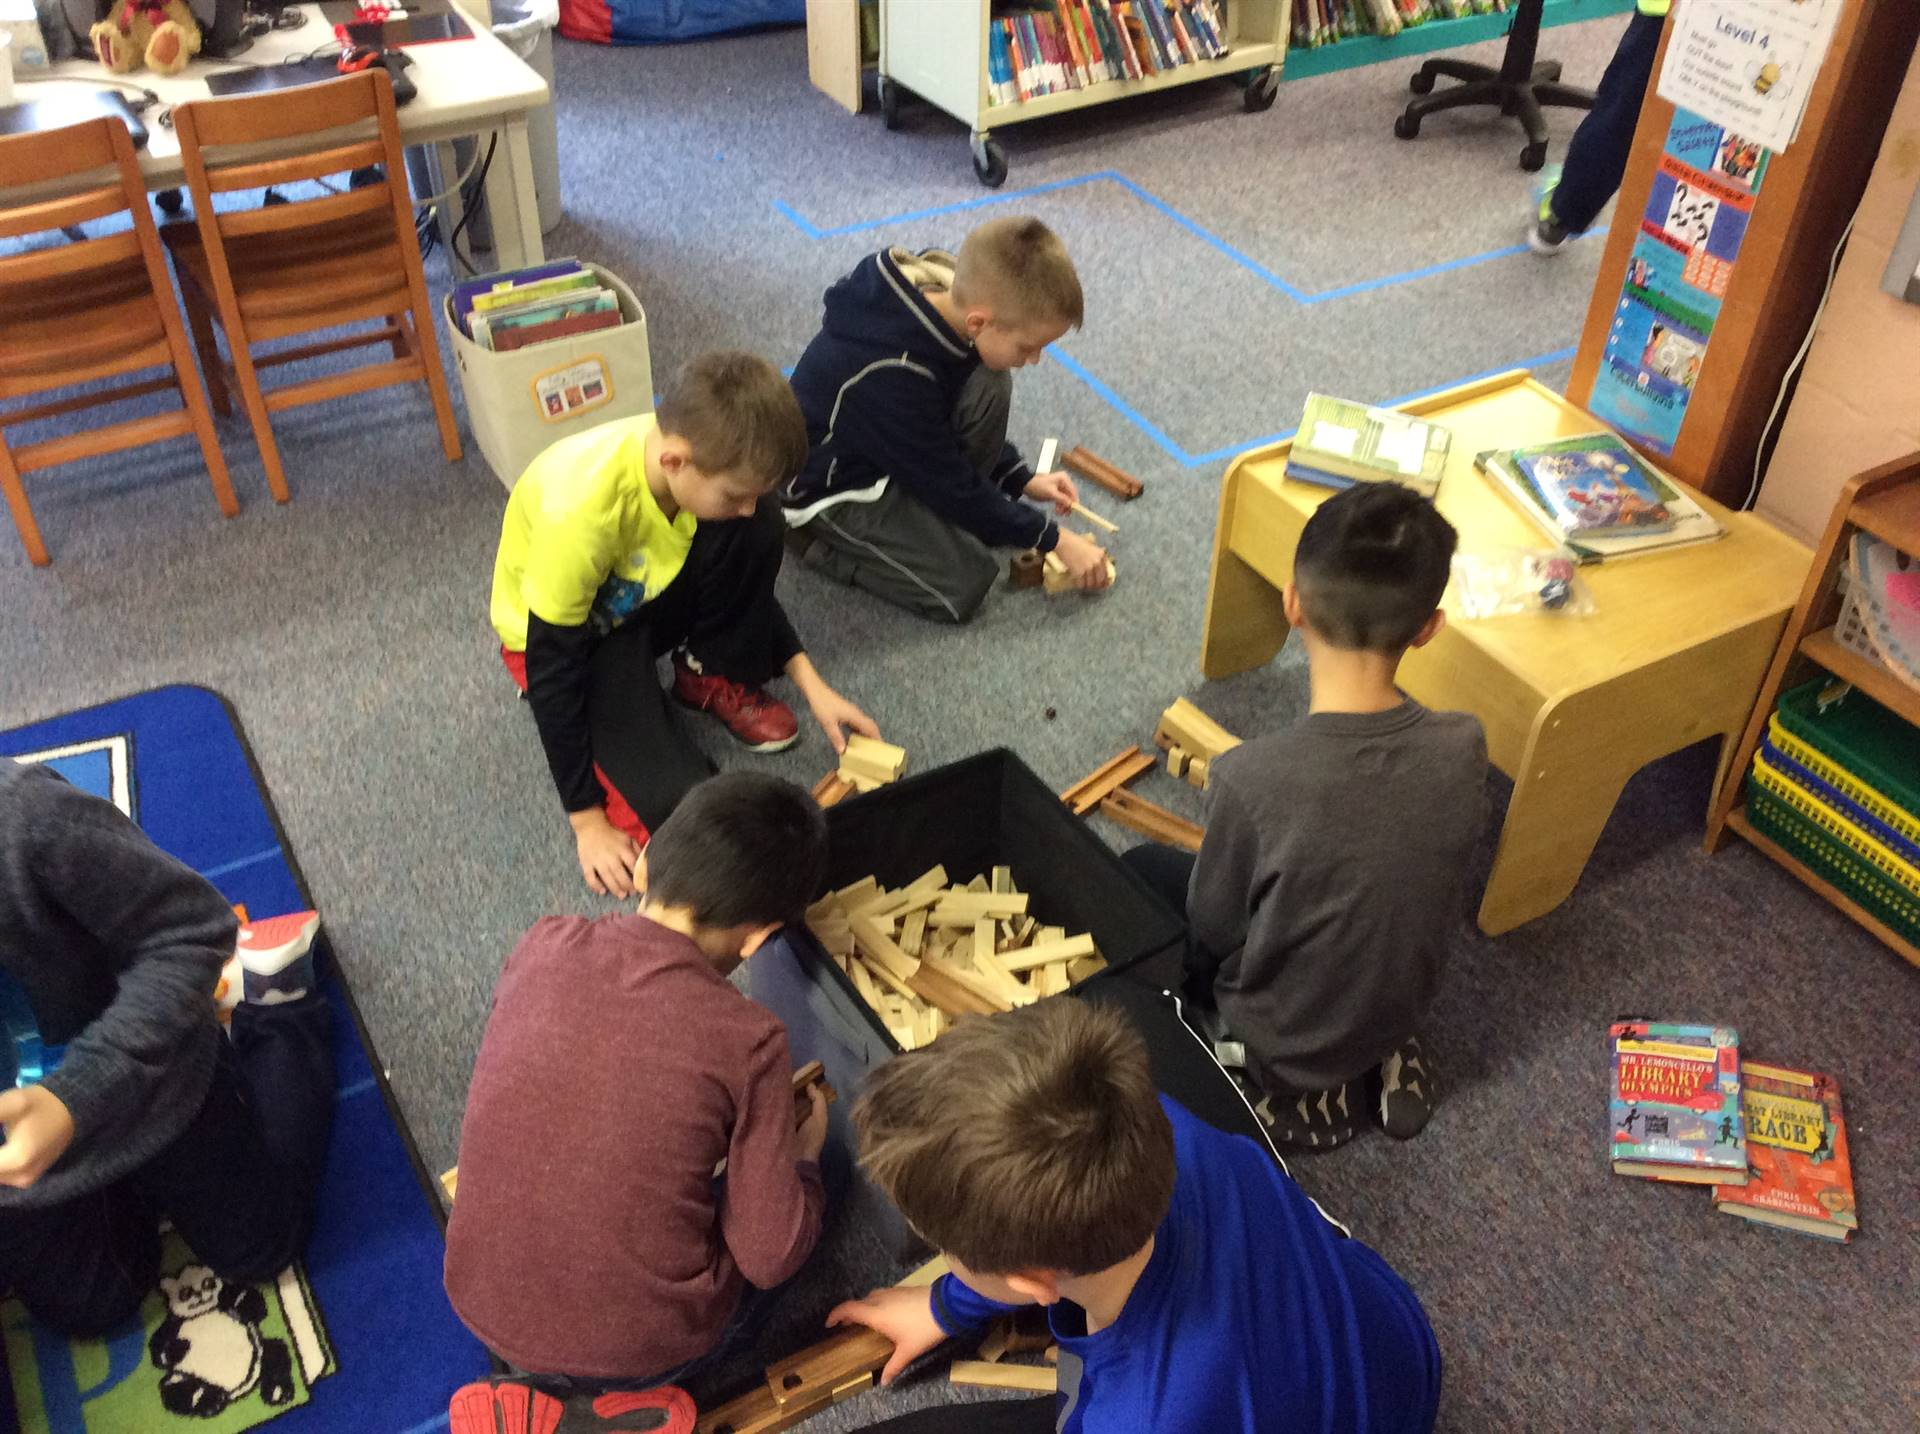 Building with Keva blocks marble tracks